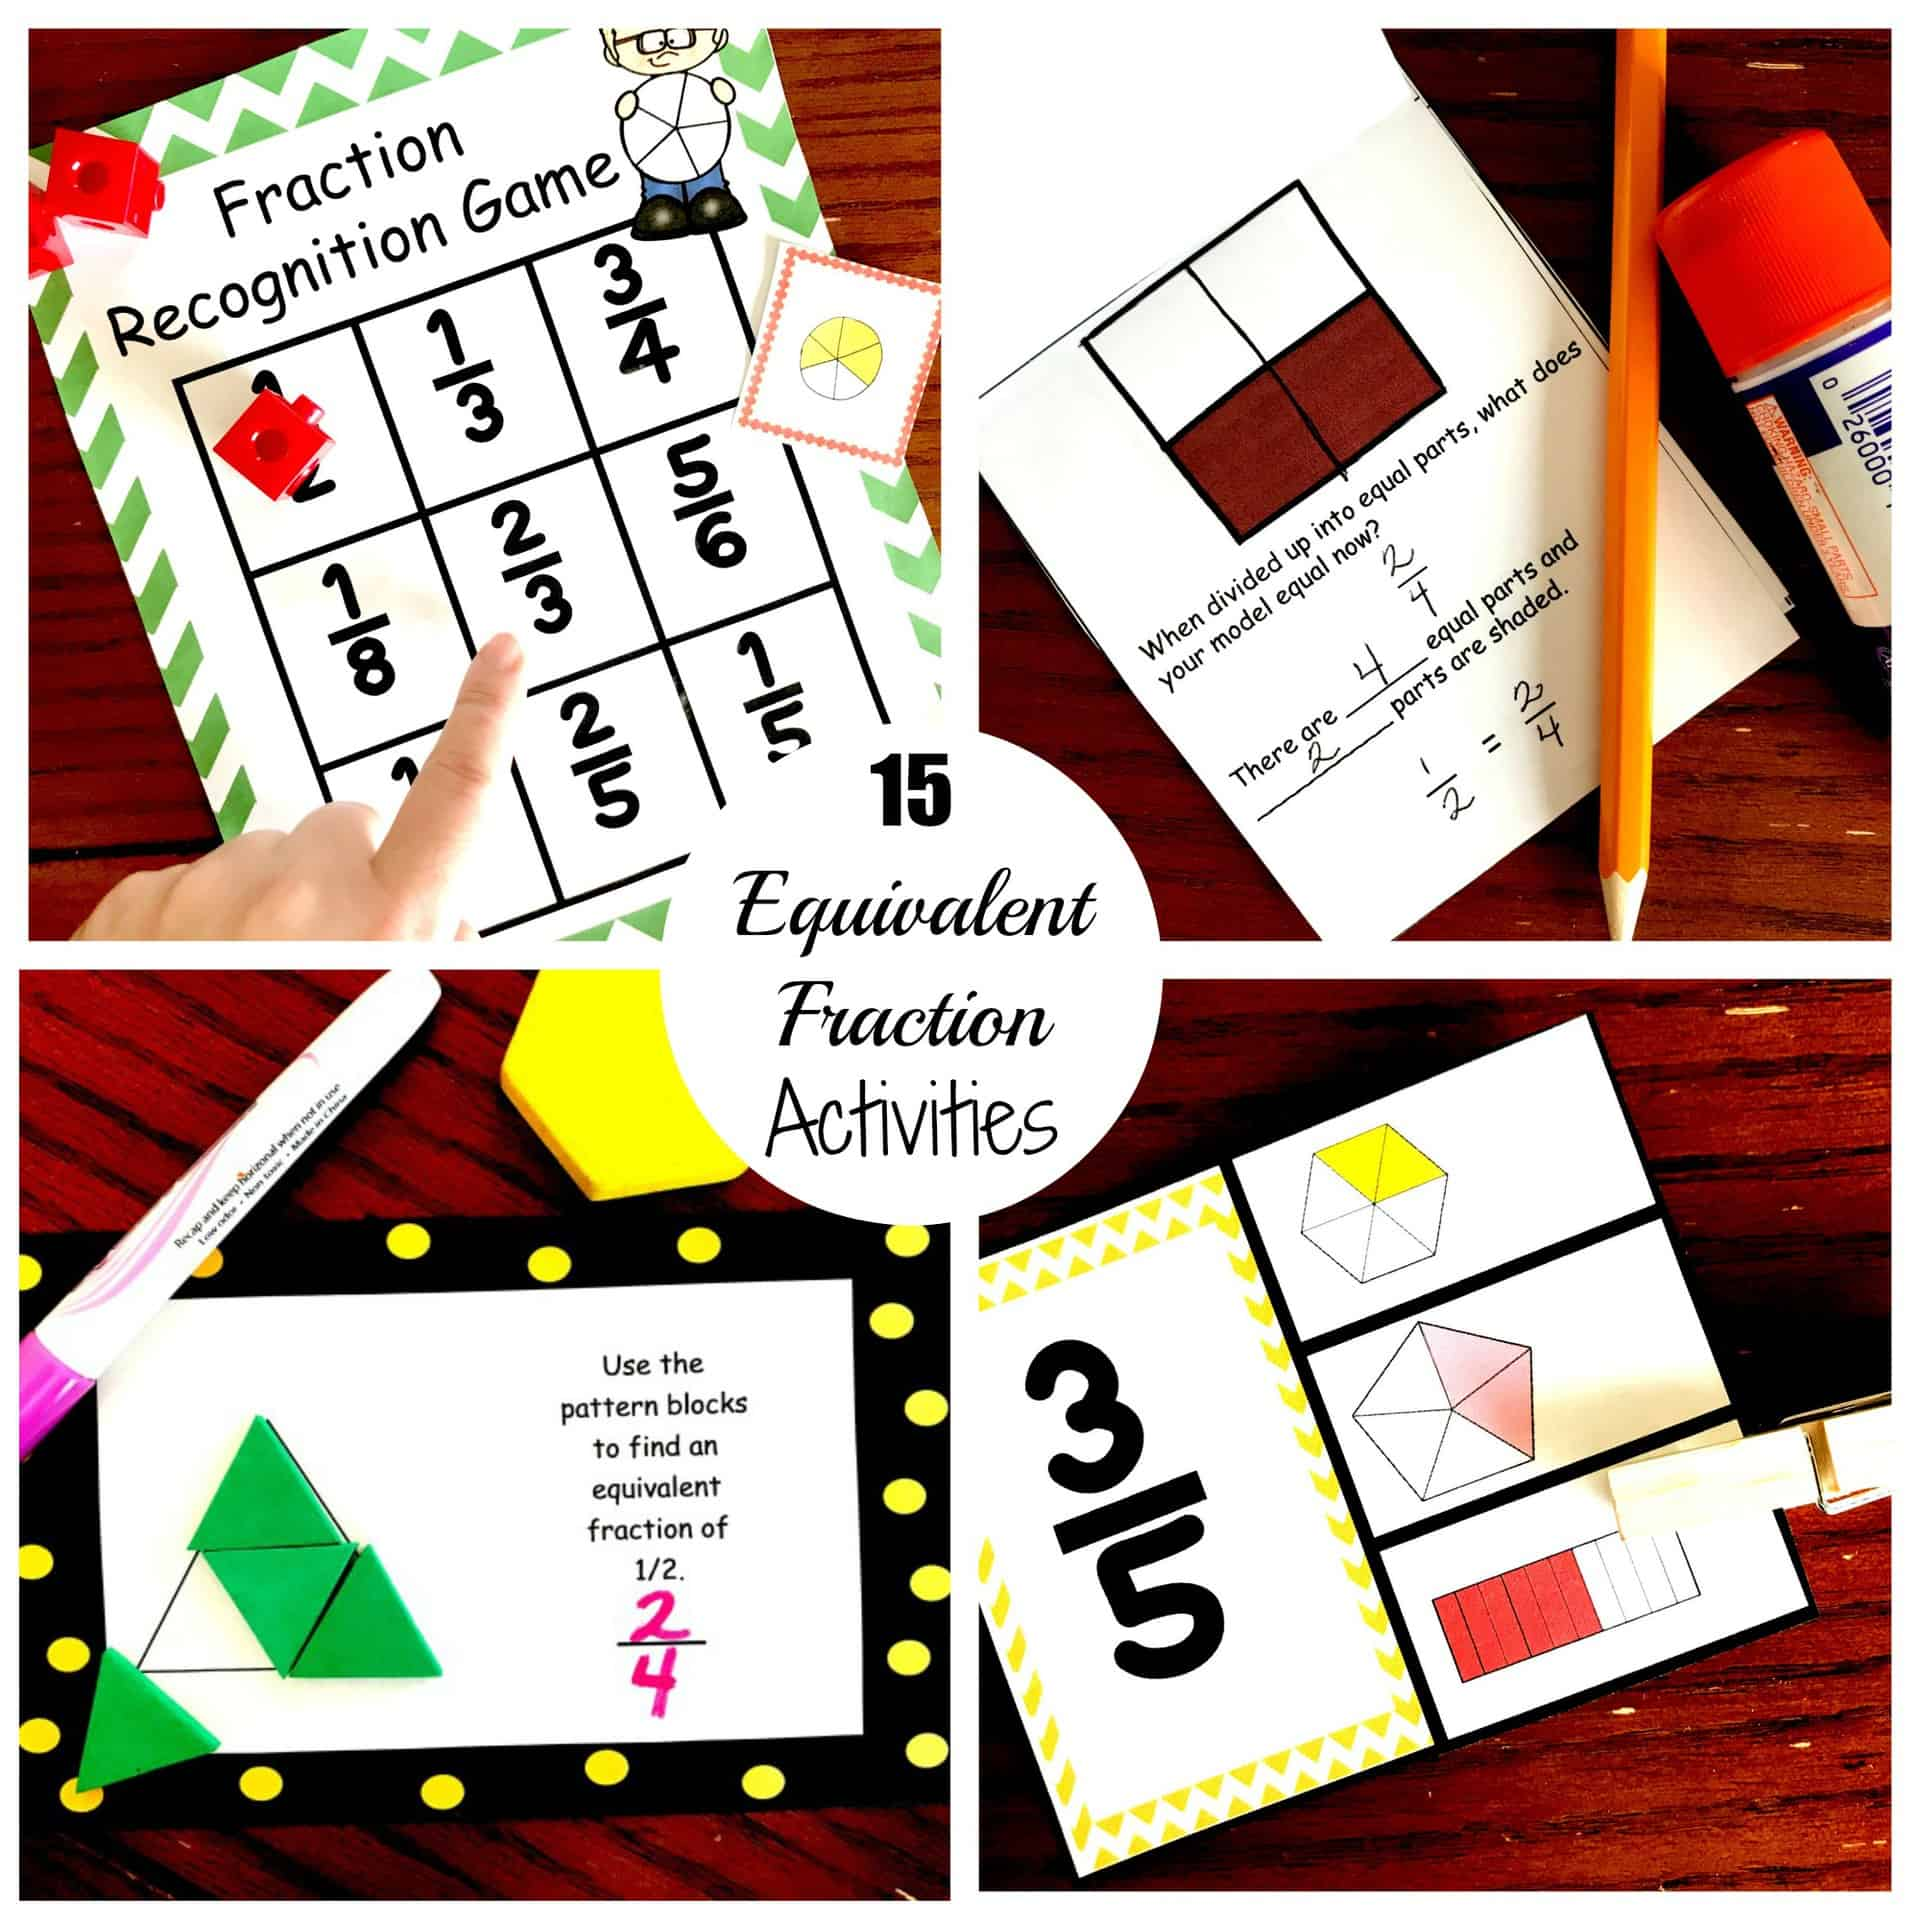 image about Equivalent Fractions Games Printable called 15 Entertaining and Attention-grabbing Strategies toward Prepare Similar Fractions